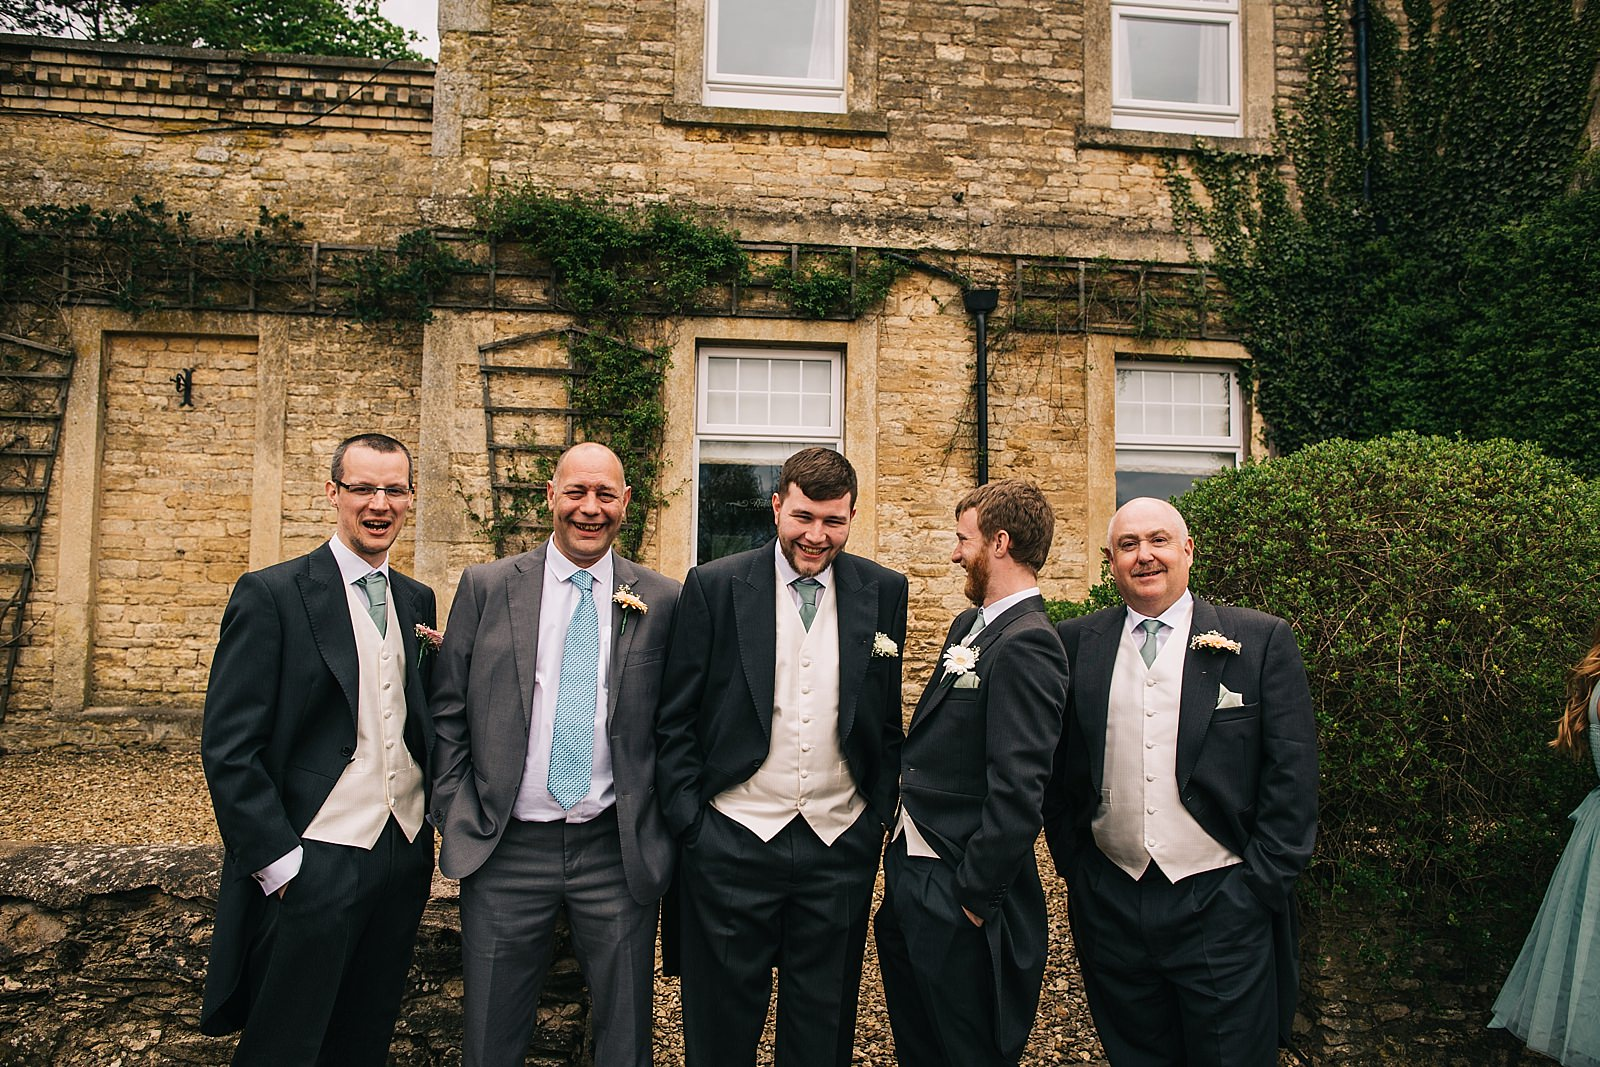 grace-josh-wedding-blisworth-the walnut-tree-inn-275